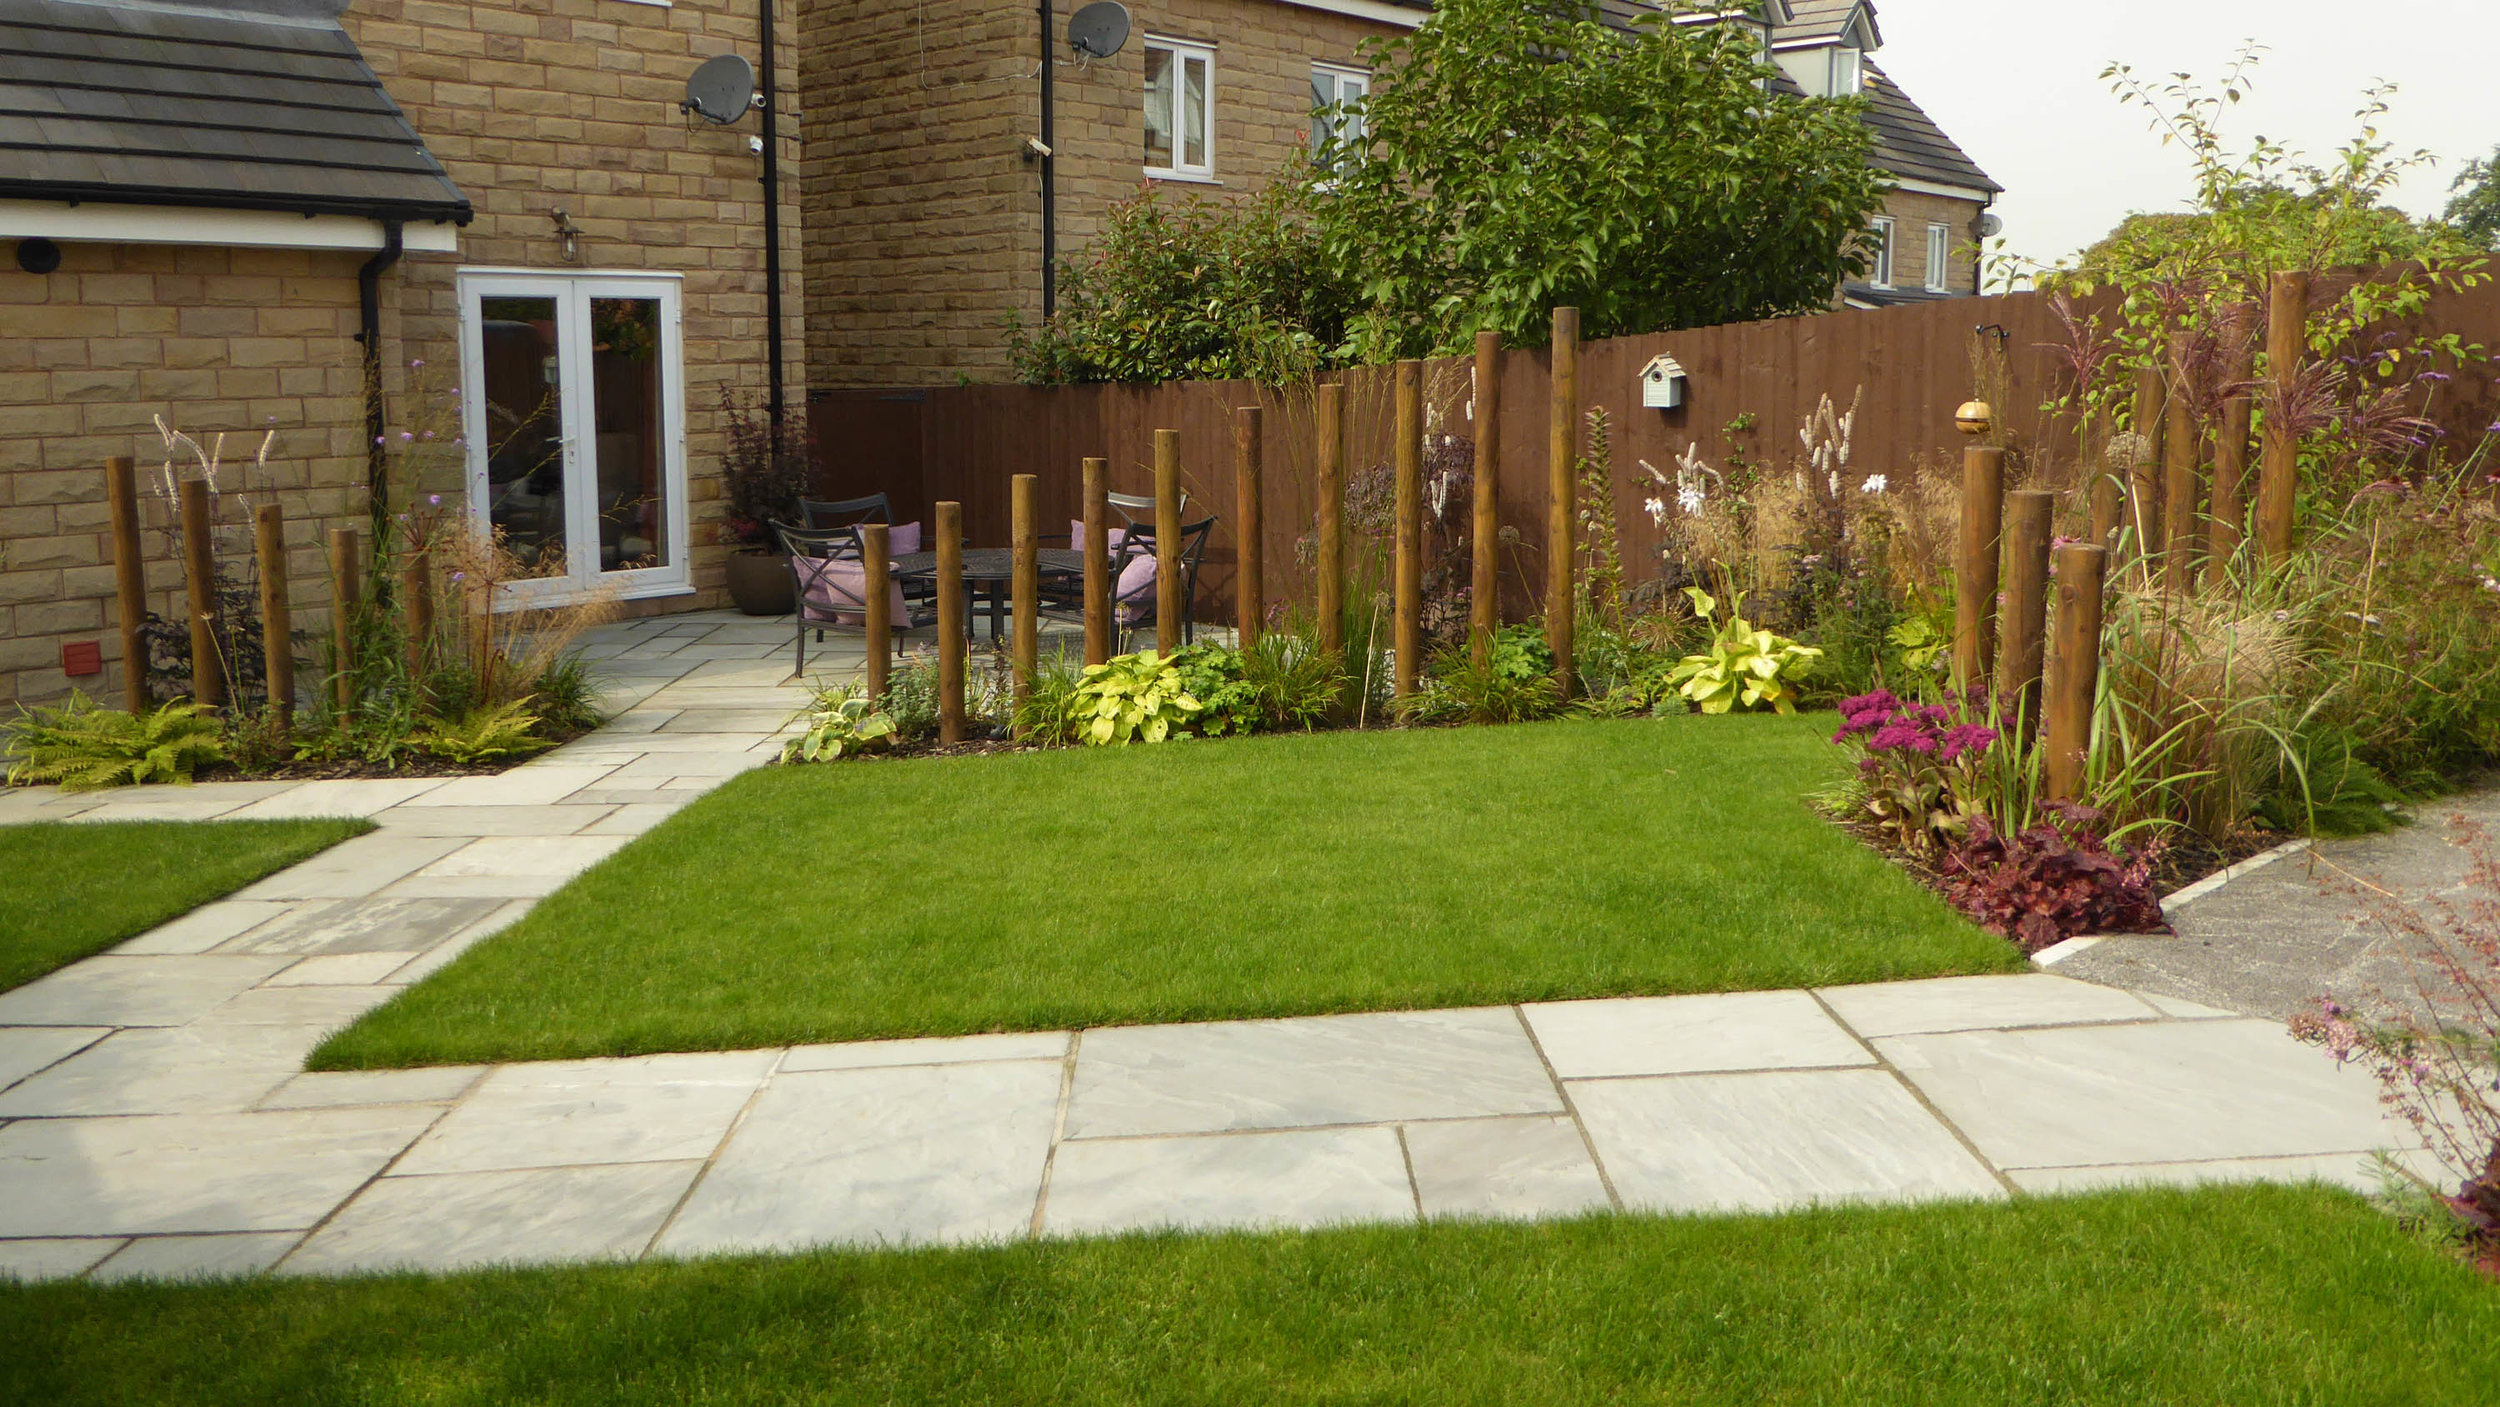 AFTER - New lawn with drainage and planting beds broken by pathway to and from car port.